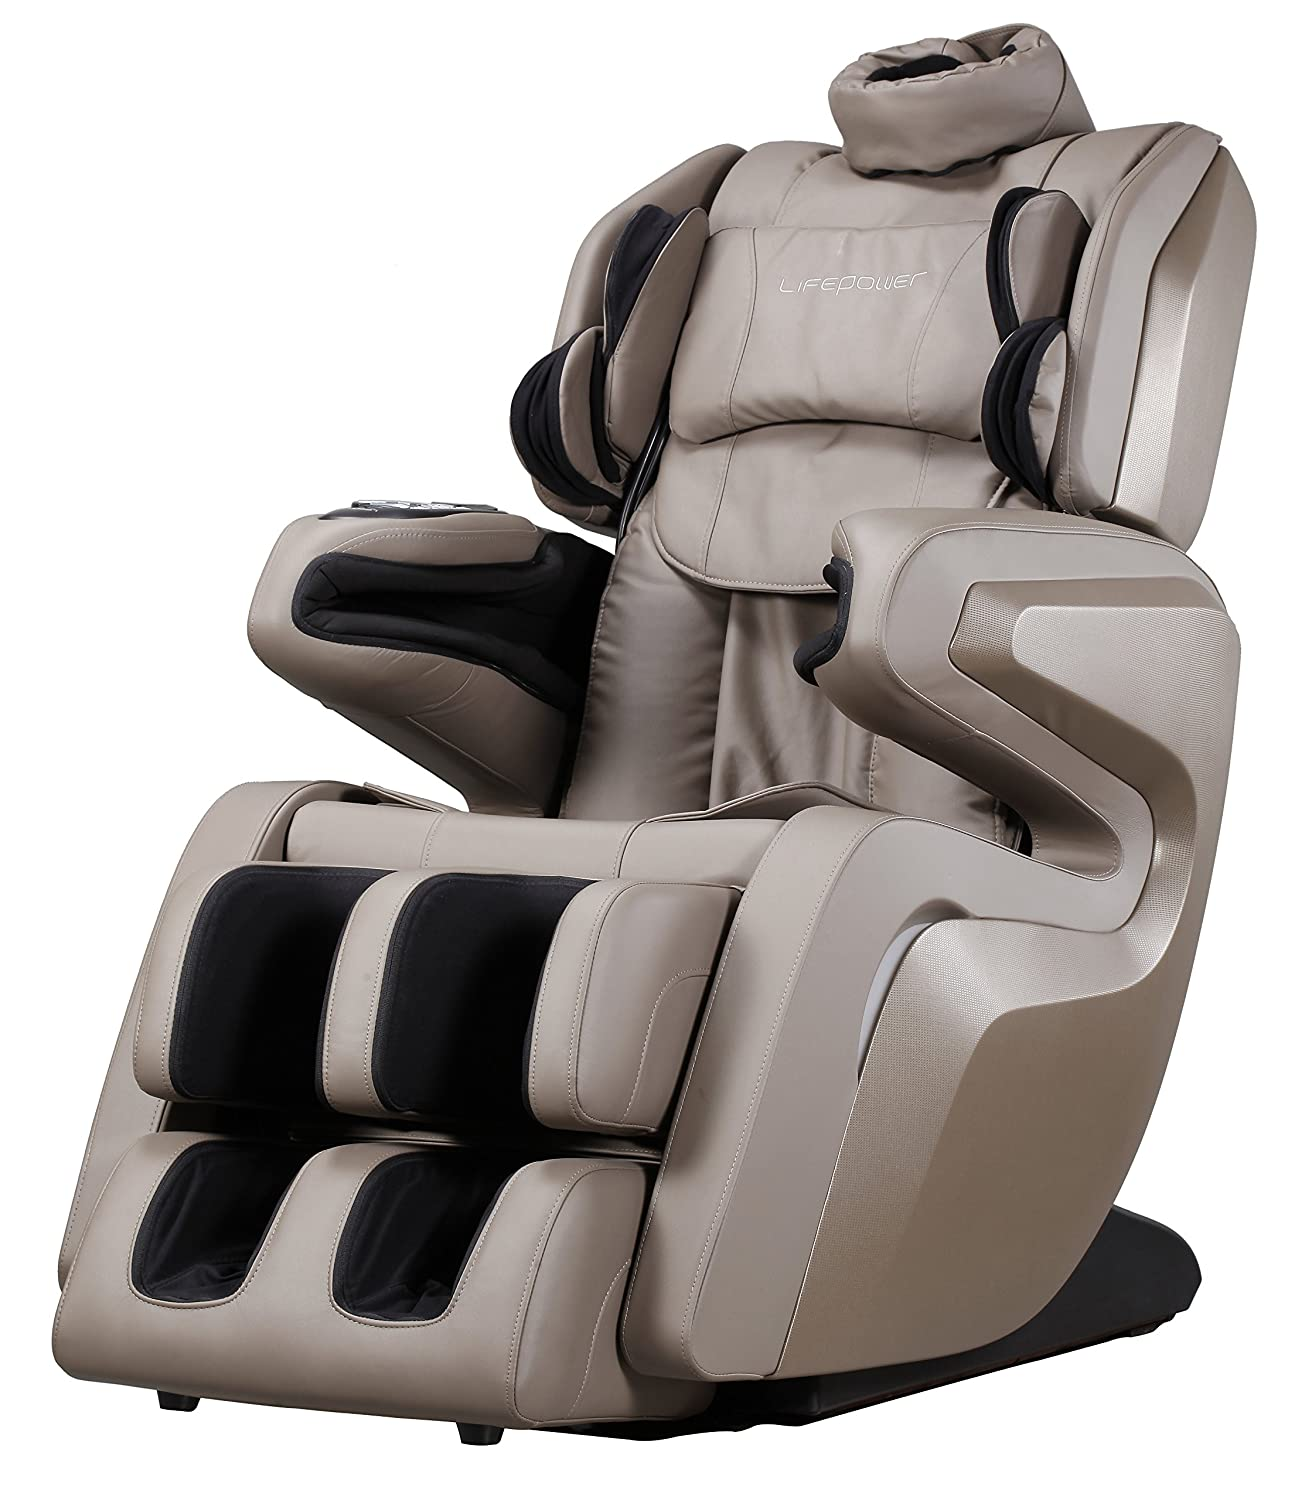 for shiat description recliner ebay ec massage relaxation selling product massager body furniture chair massaging template amazon exciting your recliners reclining